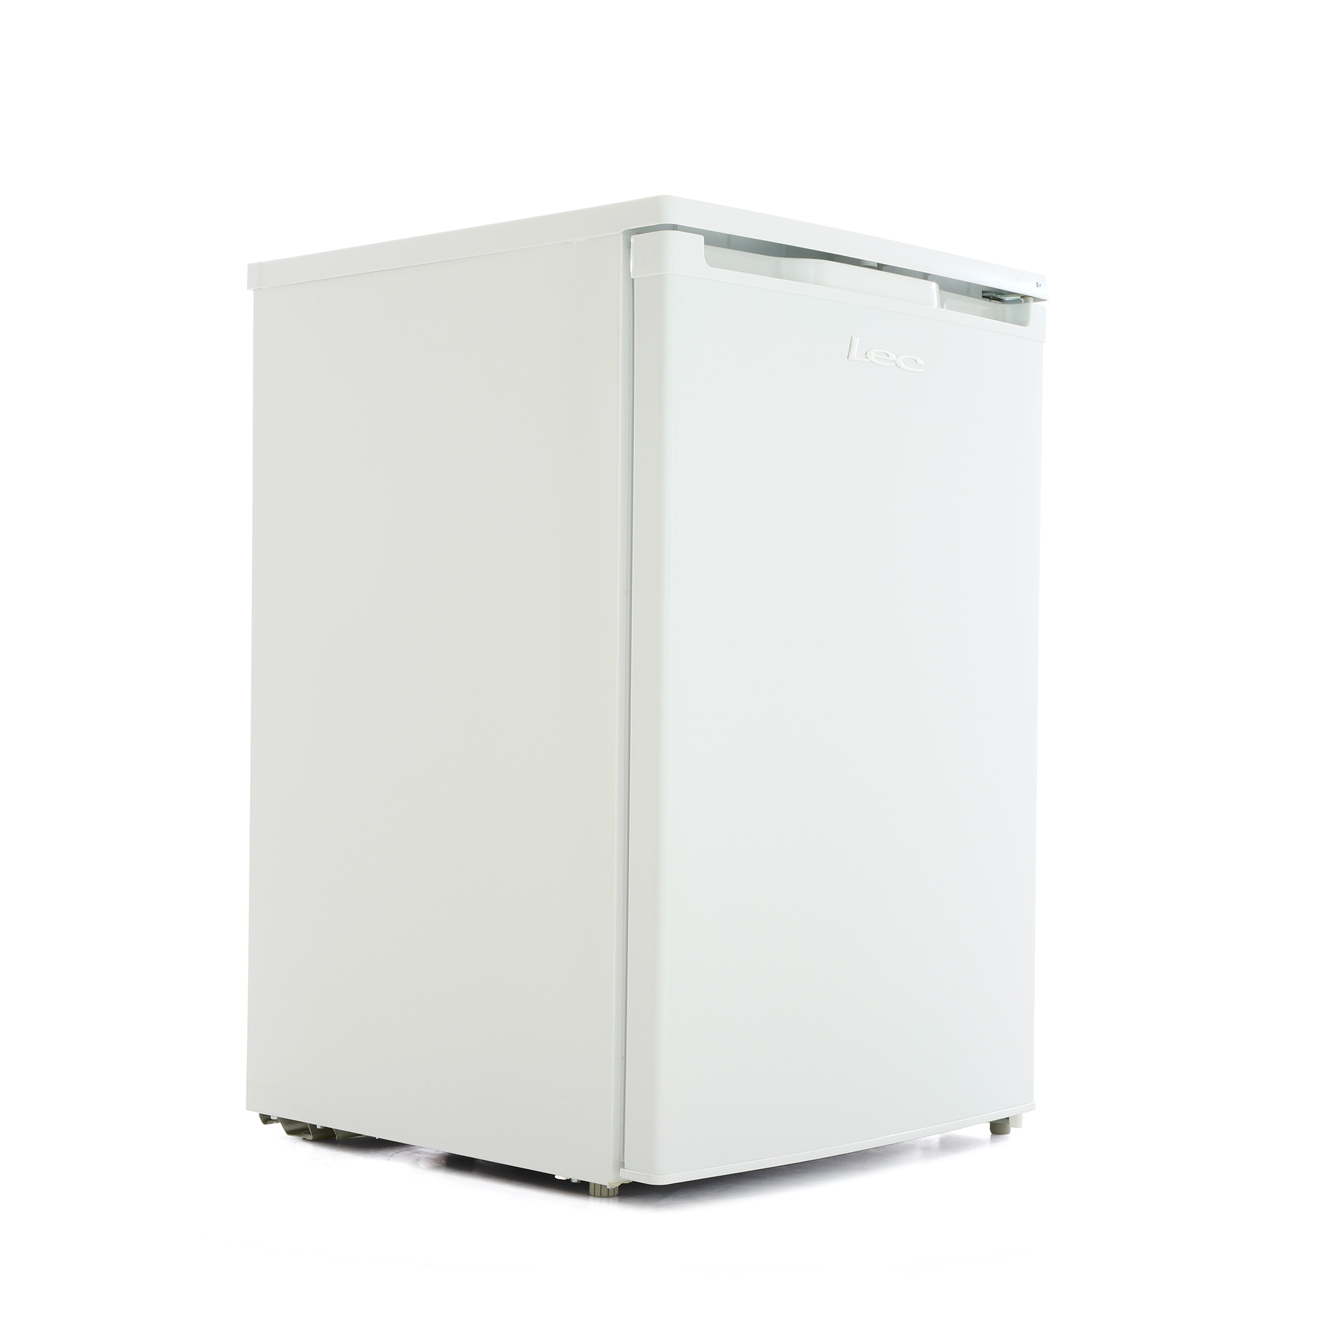 Lec R5511W White Fridge with Ice Box